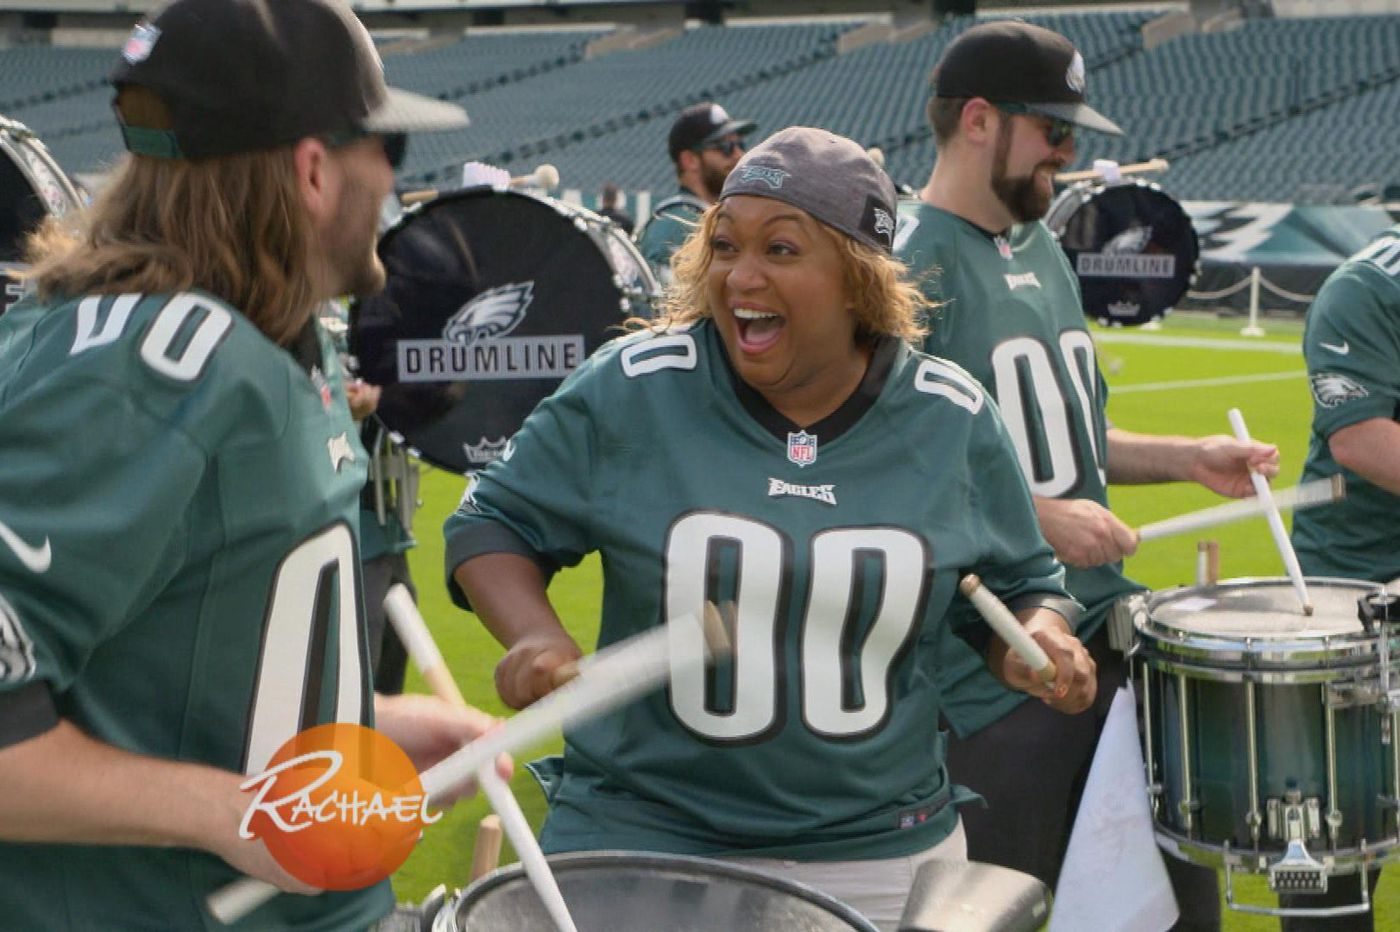 Philadelphia Eagles' drumline to be featured on the Rachael Ray Show on Friday morning